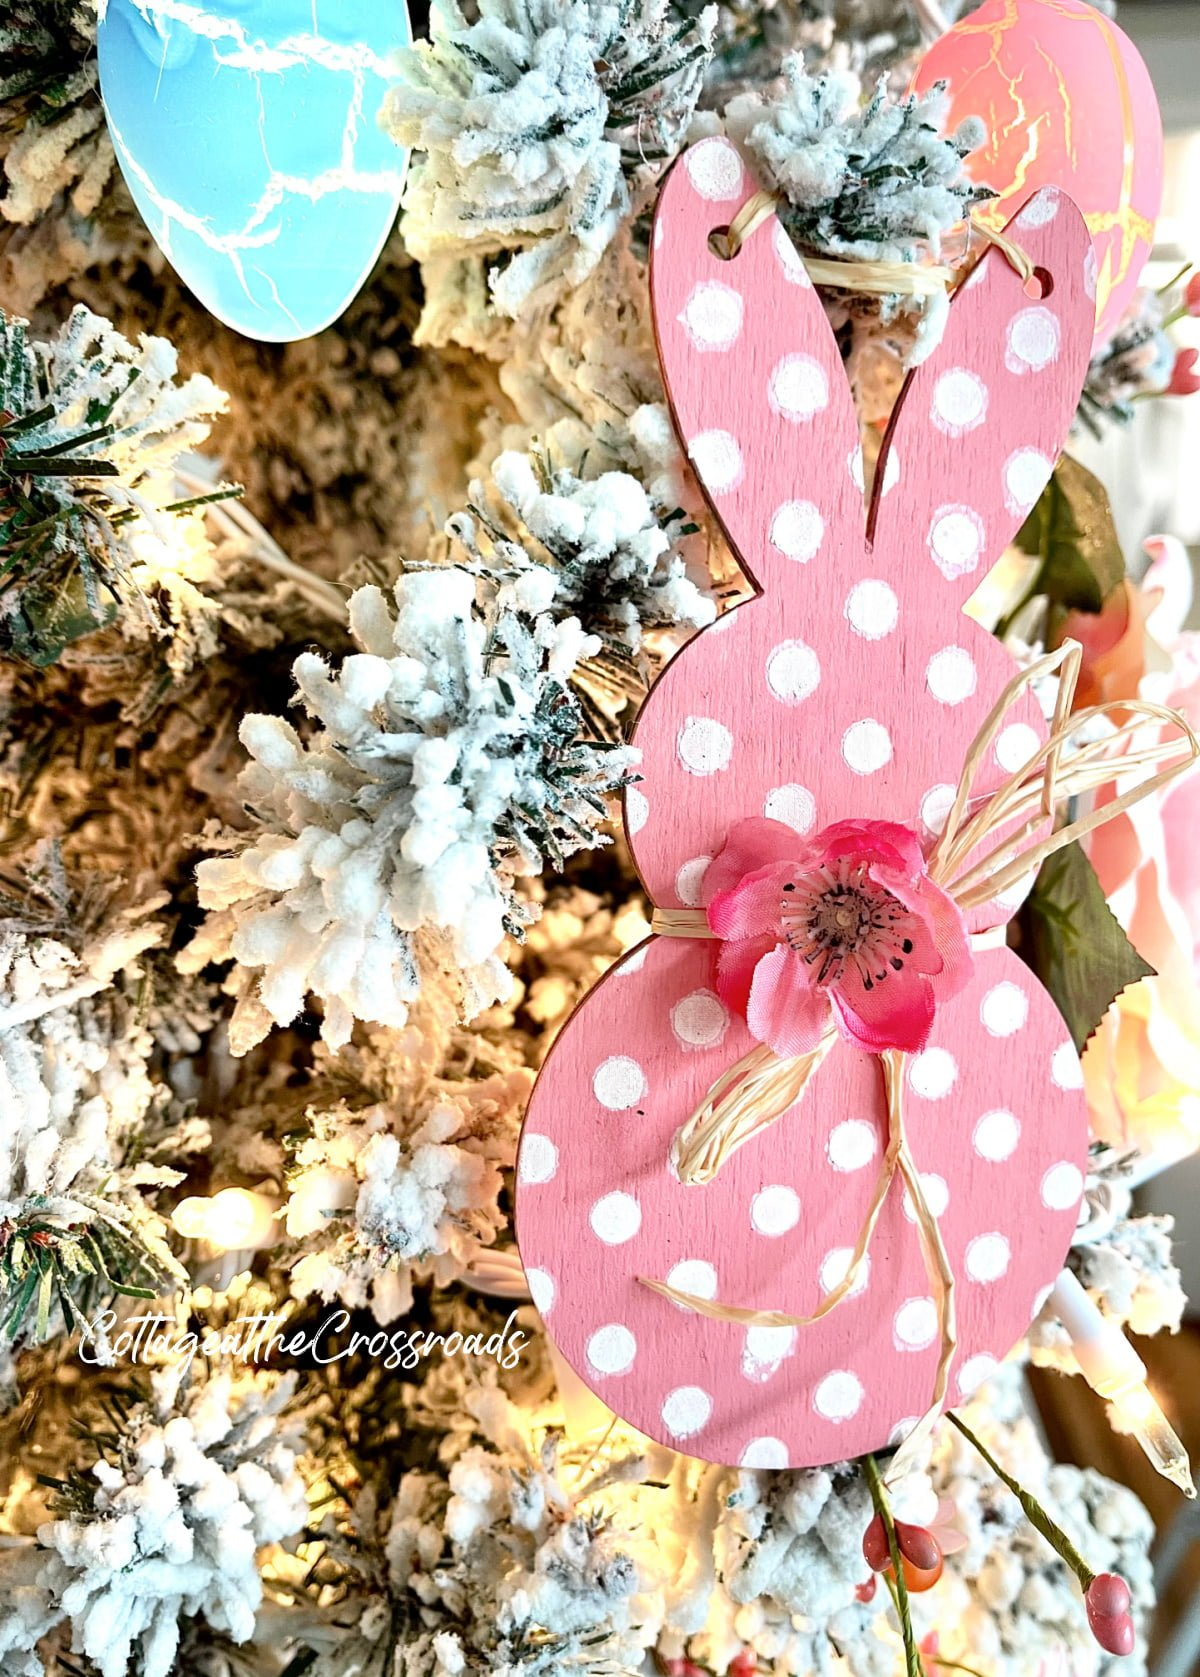 polka dot wooden bunny on a Easter tree